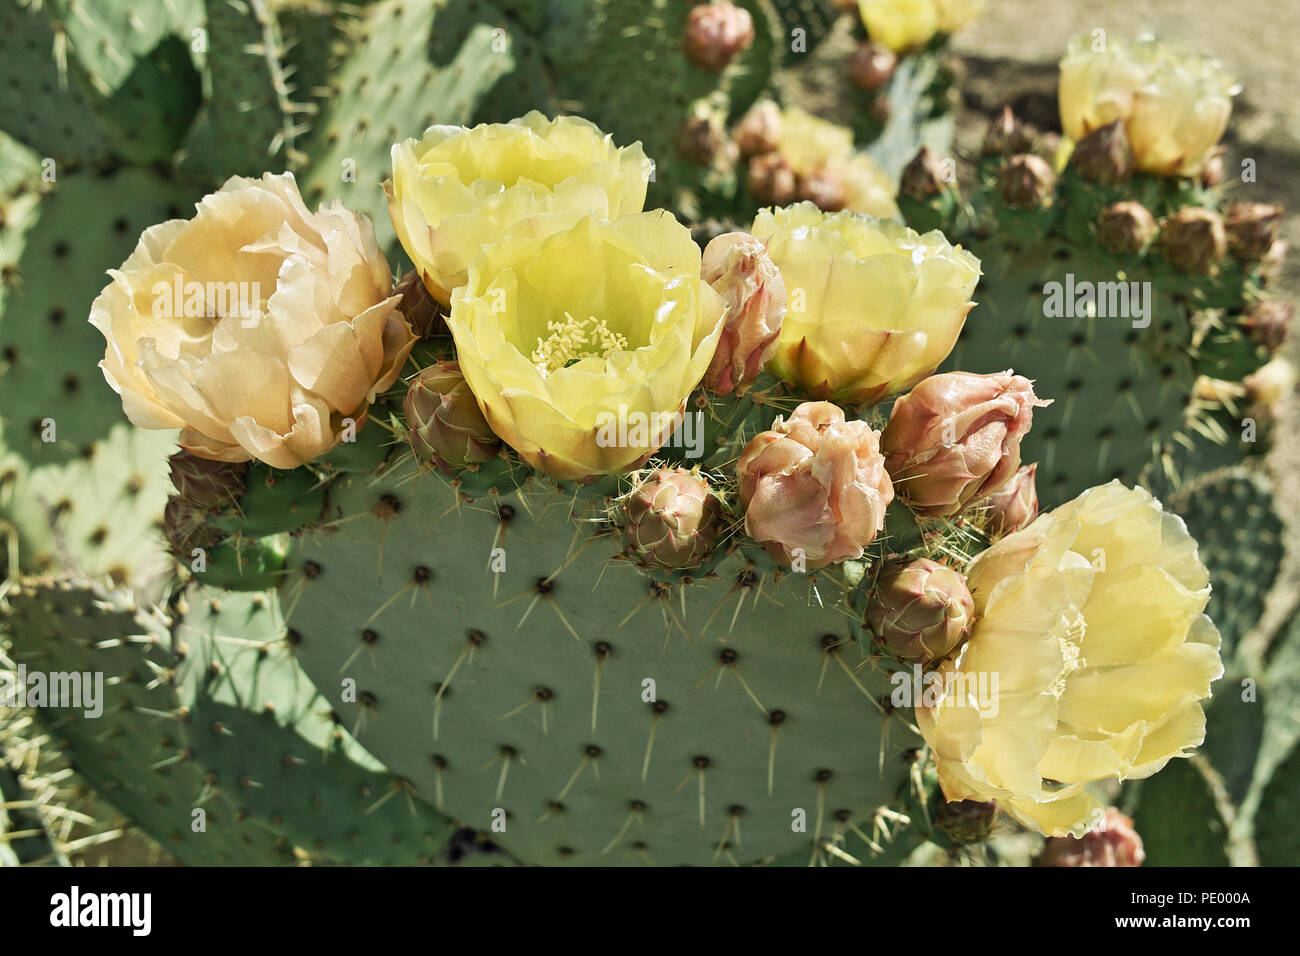 plants of prickly pears, Opuntia robusta, in blooming Stock Photo